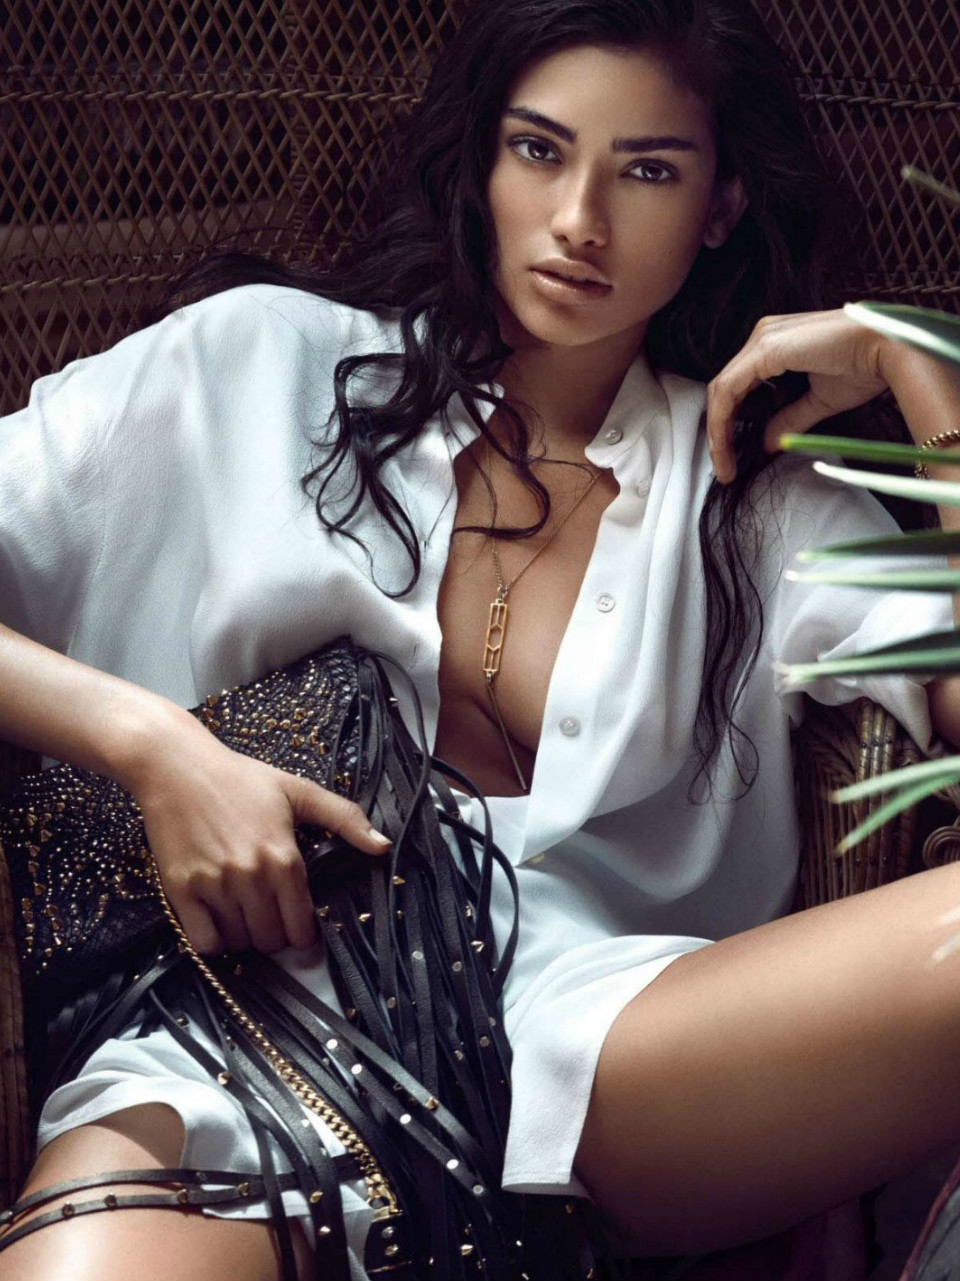 Kelly Gale Hot Modeling - Kelly Gale Hot Modeling